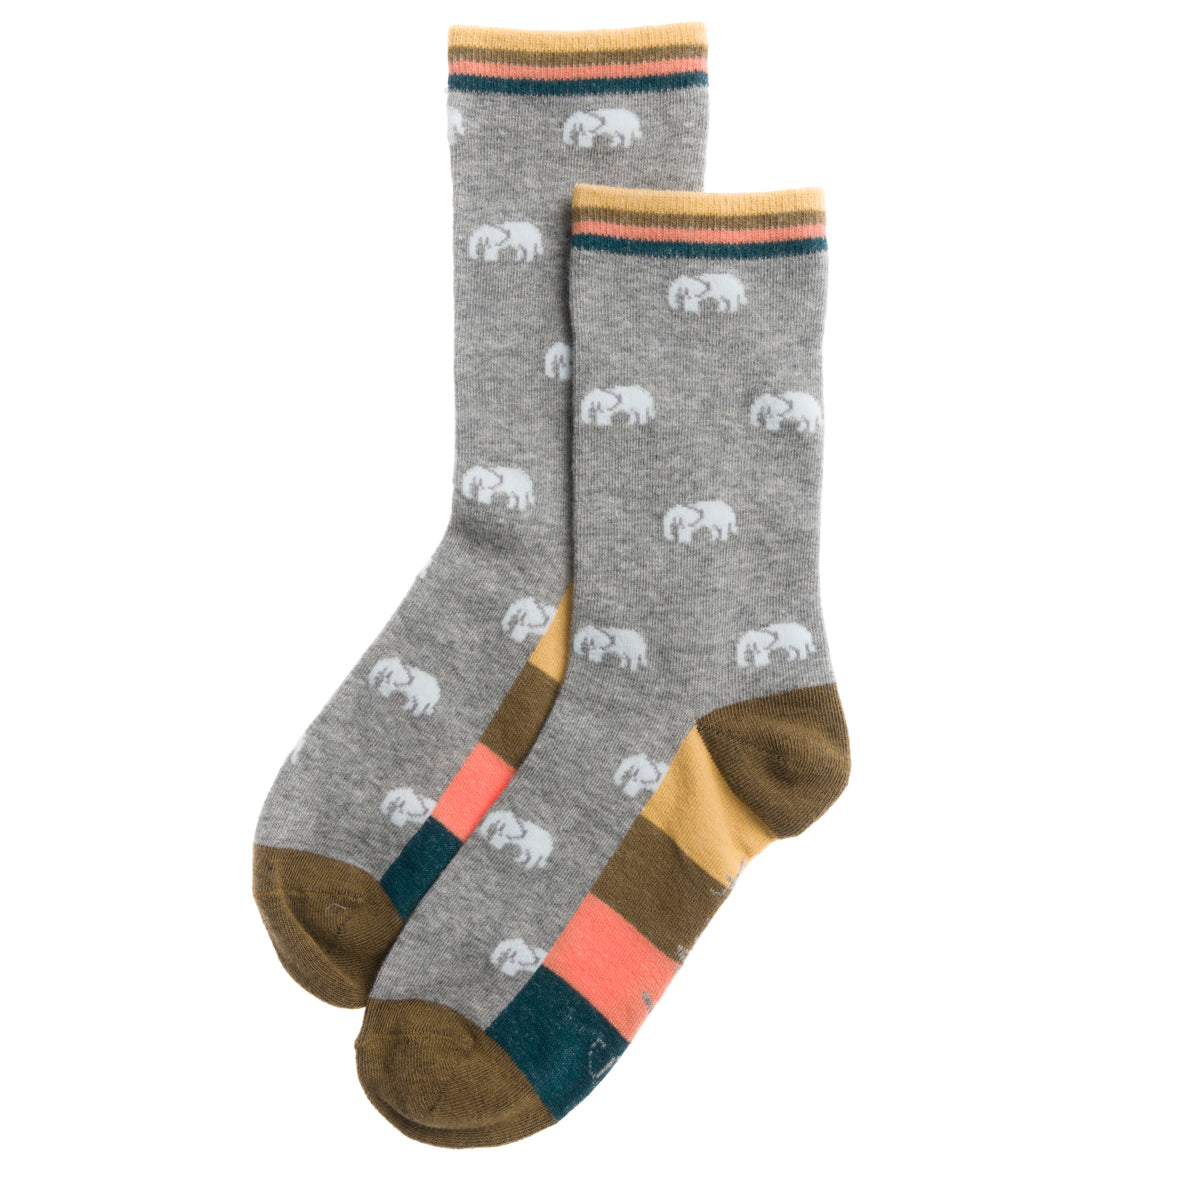 Elephant statement socks by Sophie Allport